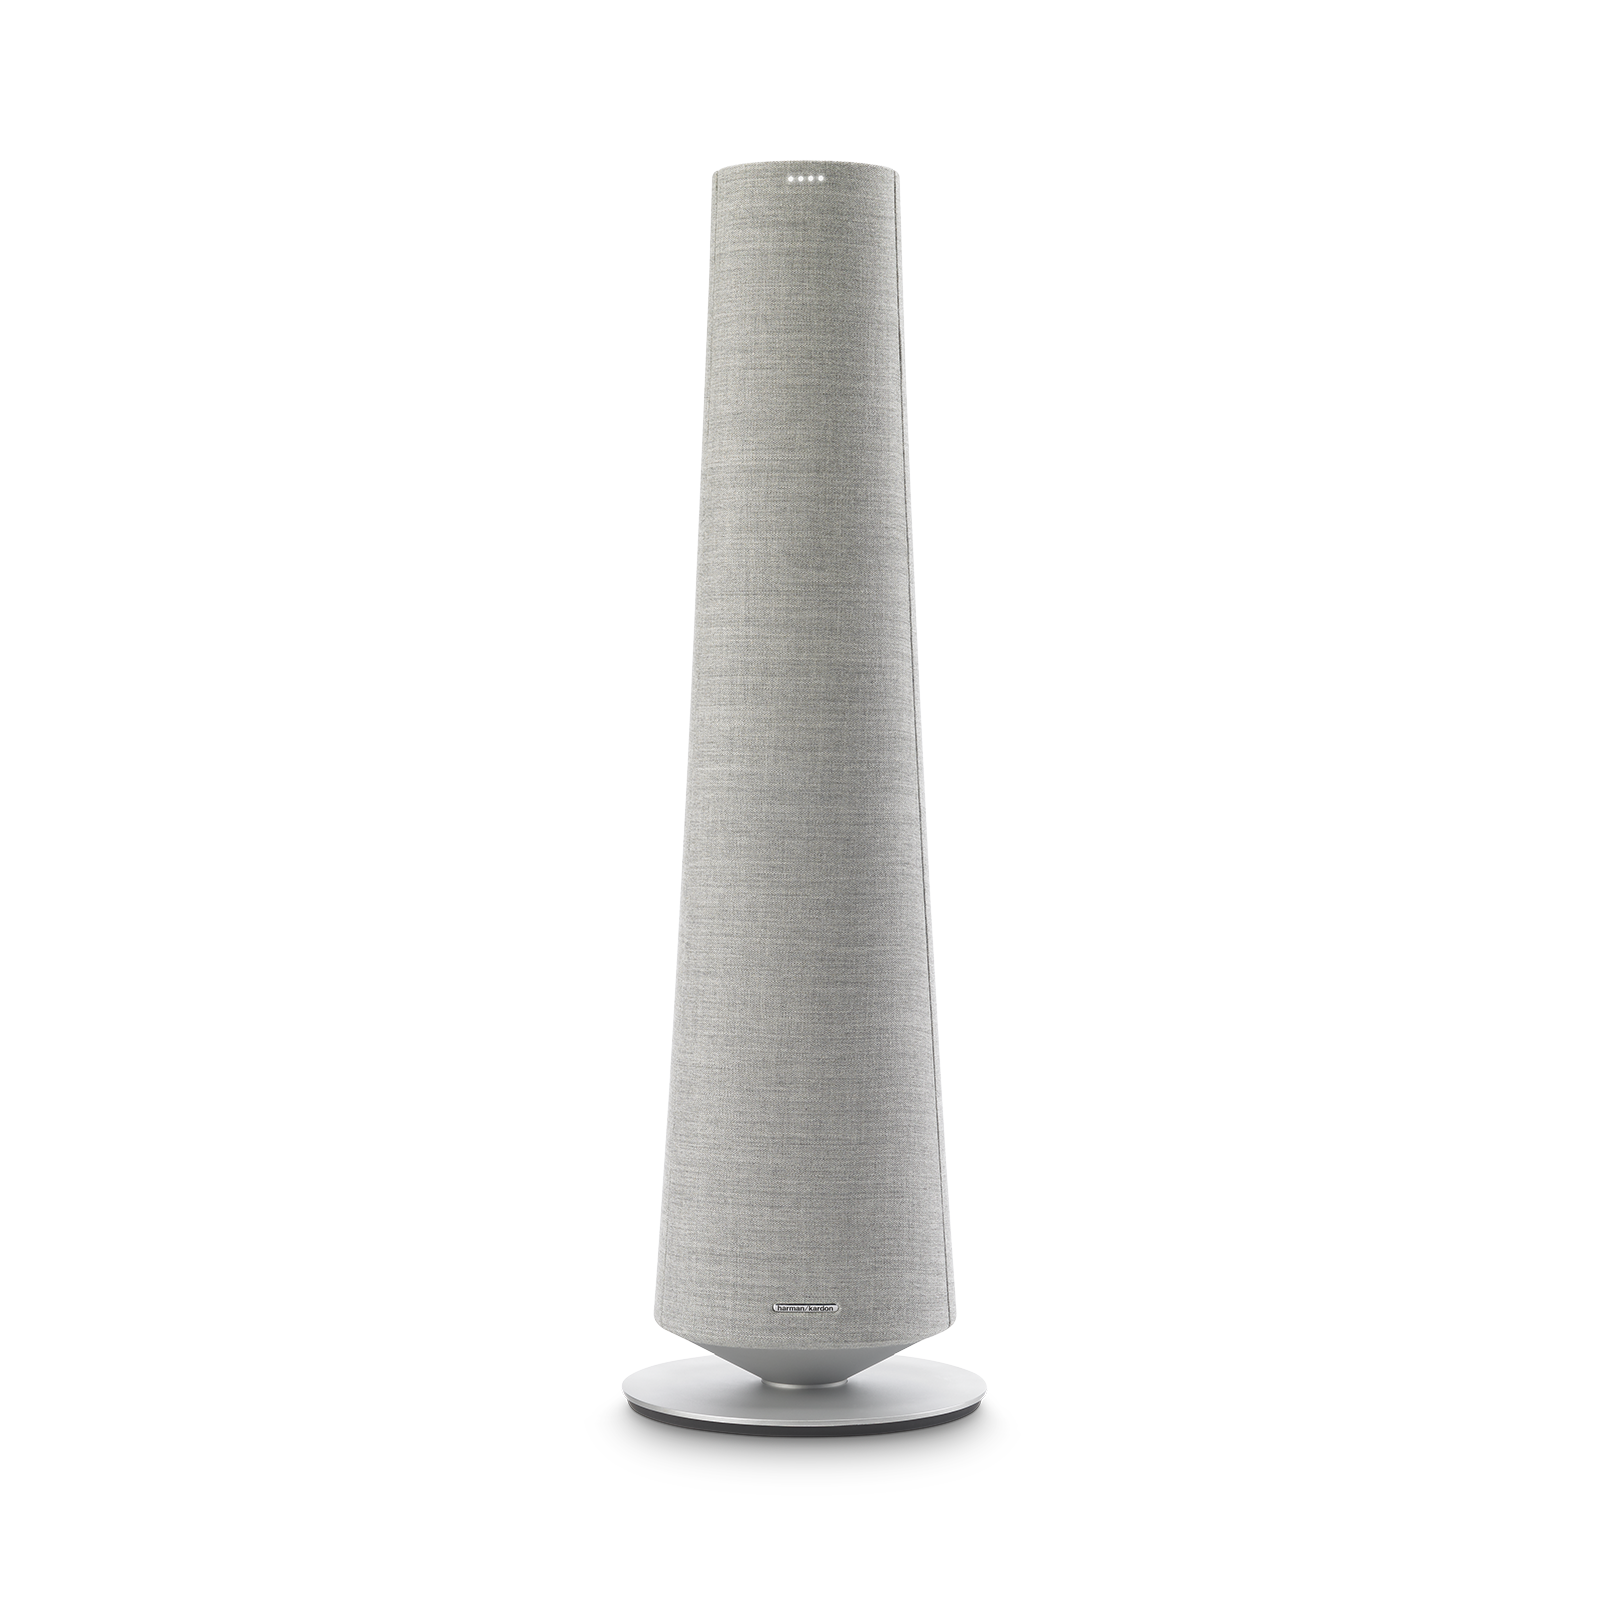 Harman Kardon Citation Tower